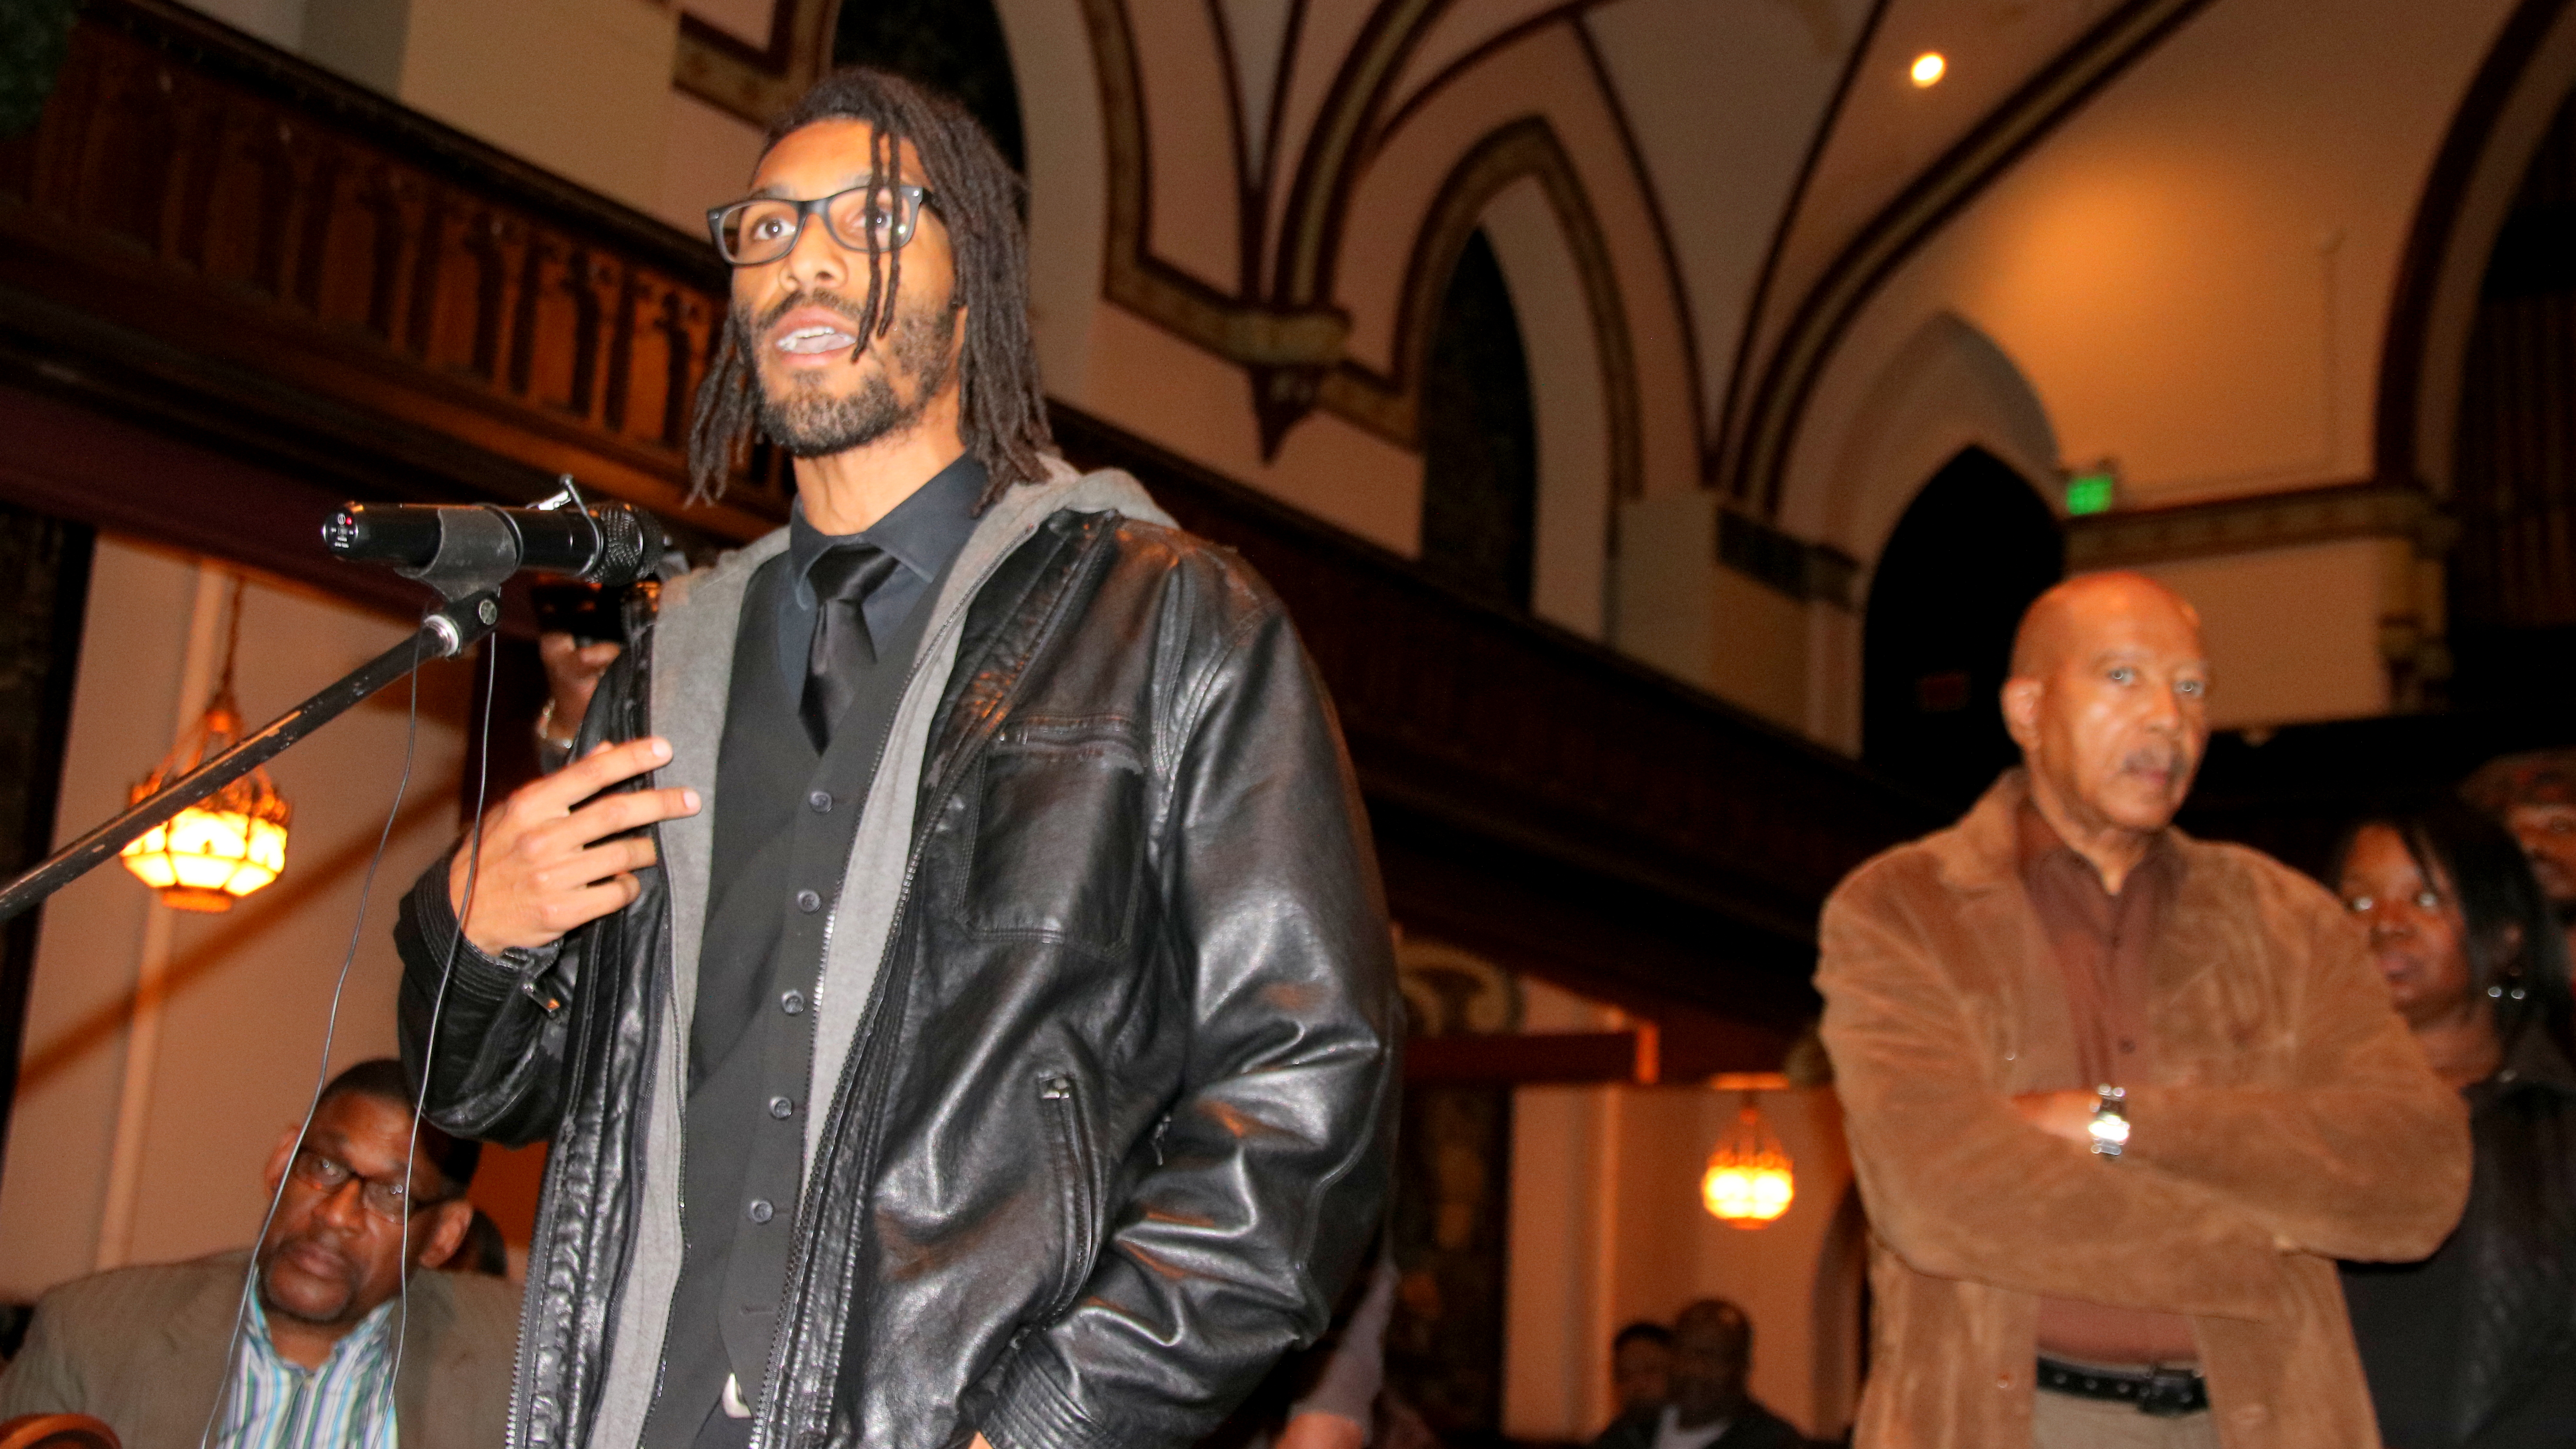 Justin Sanders addresses Baltimore's Civilian Review Board at the Metropolitan United Methodist Church. (Fern Shen)